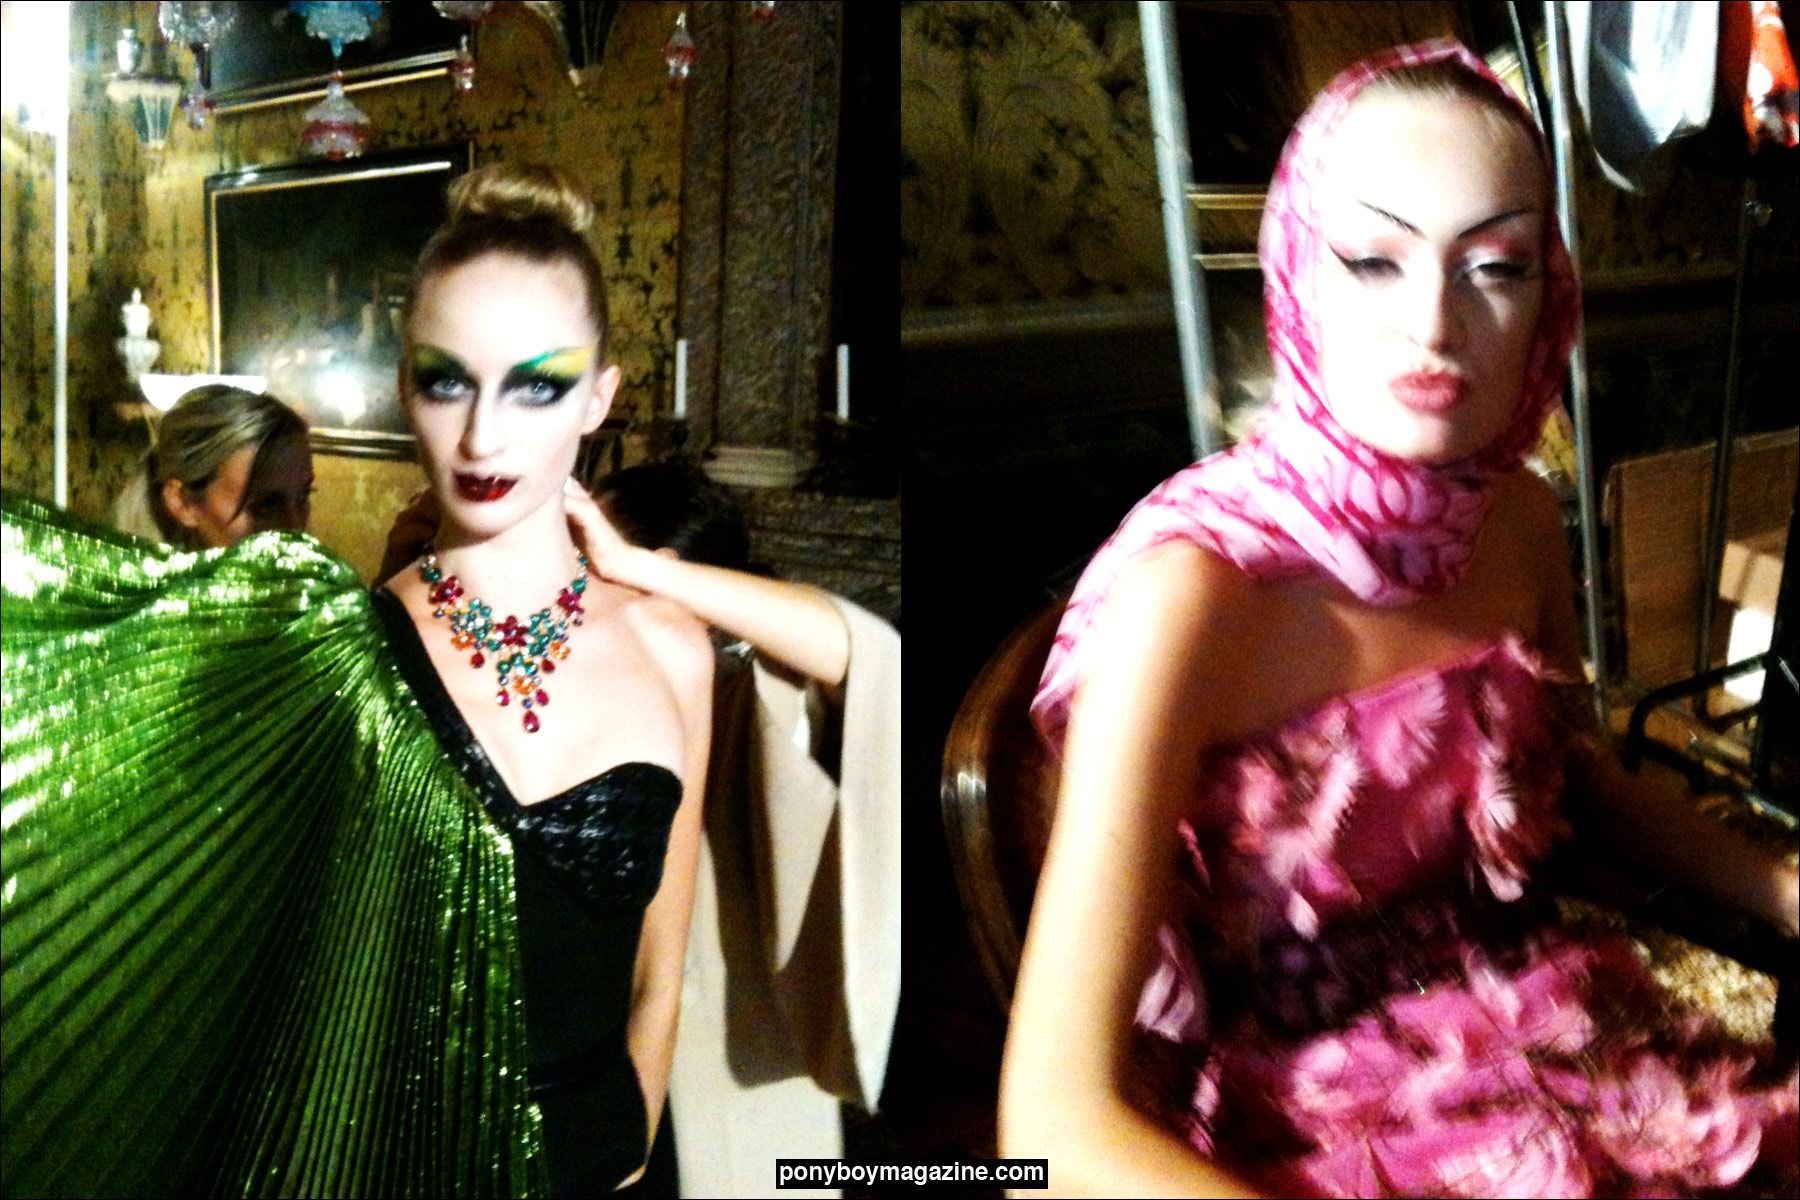 Models backstage in Vienna, wearing David Dalrymple designs. Ponyboy Magazine.